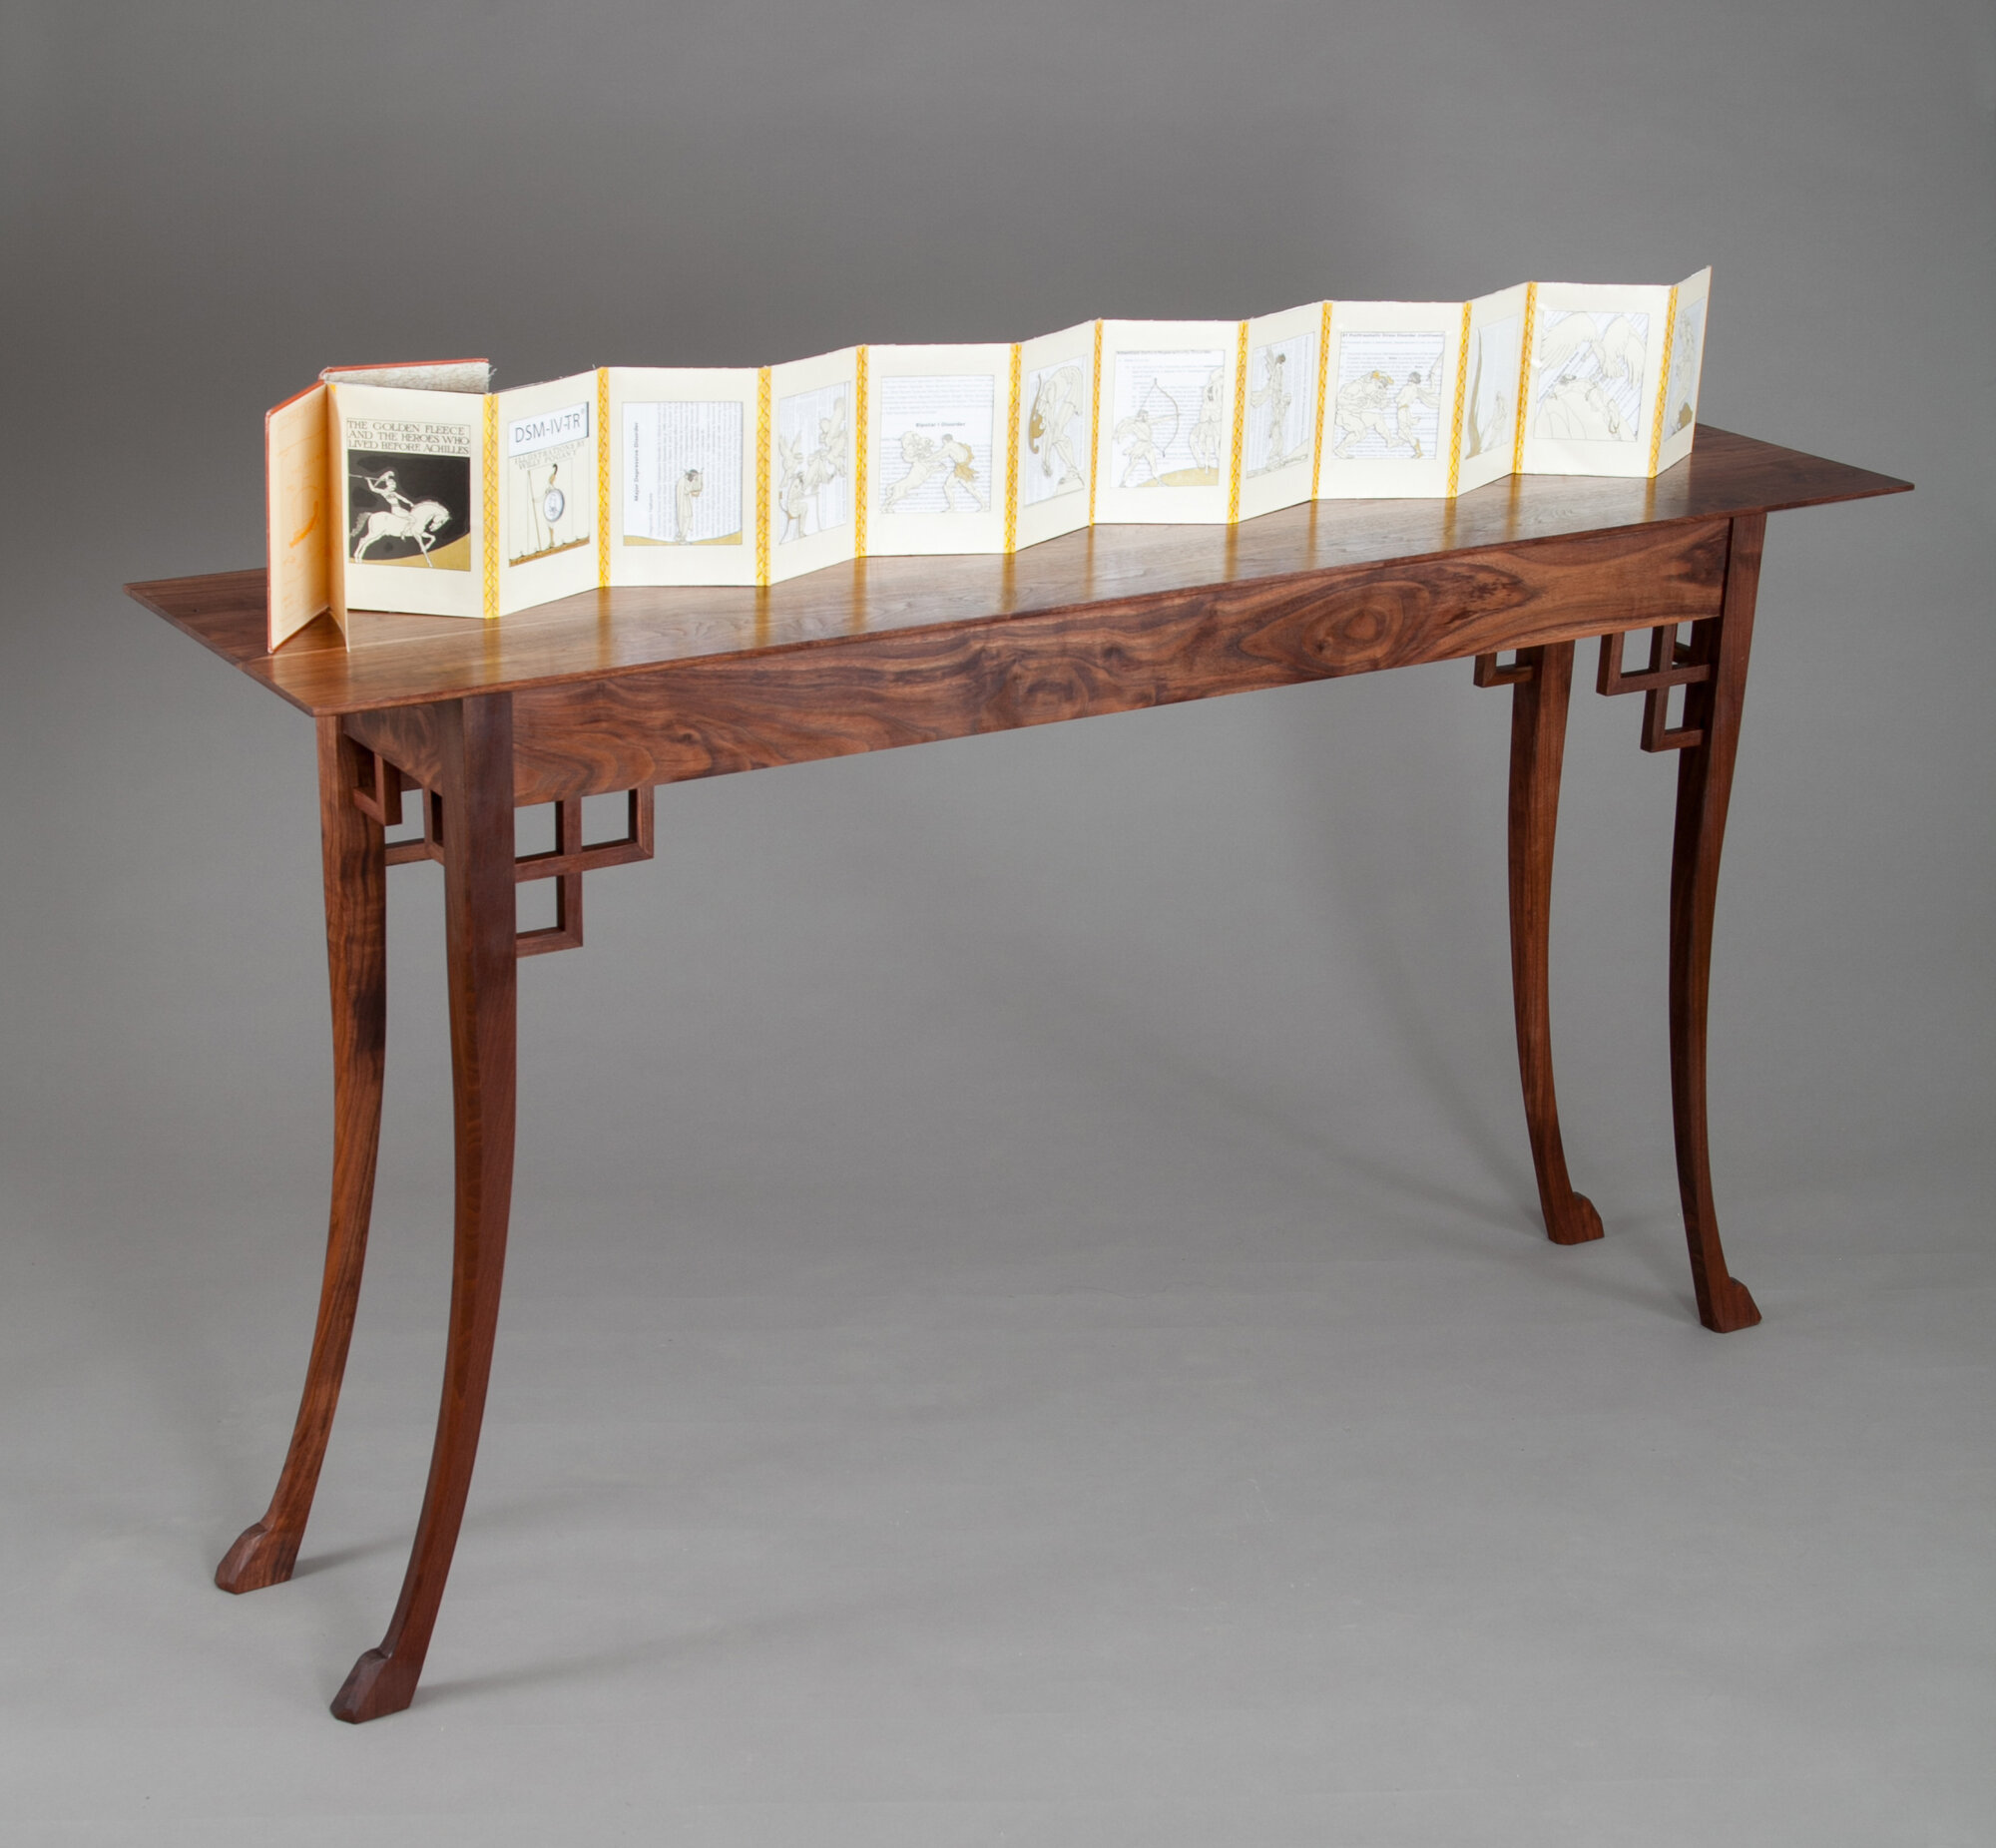 Gallery Table displaying hand made book